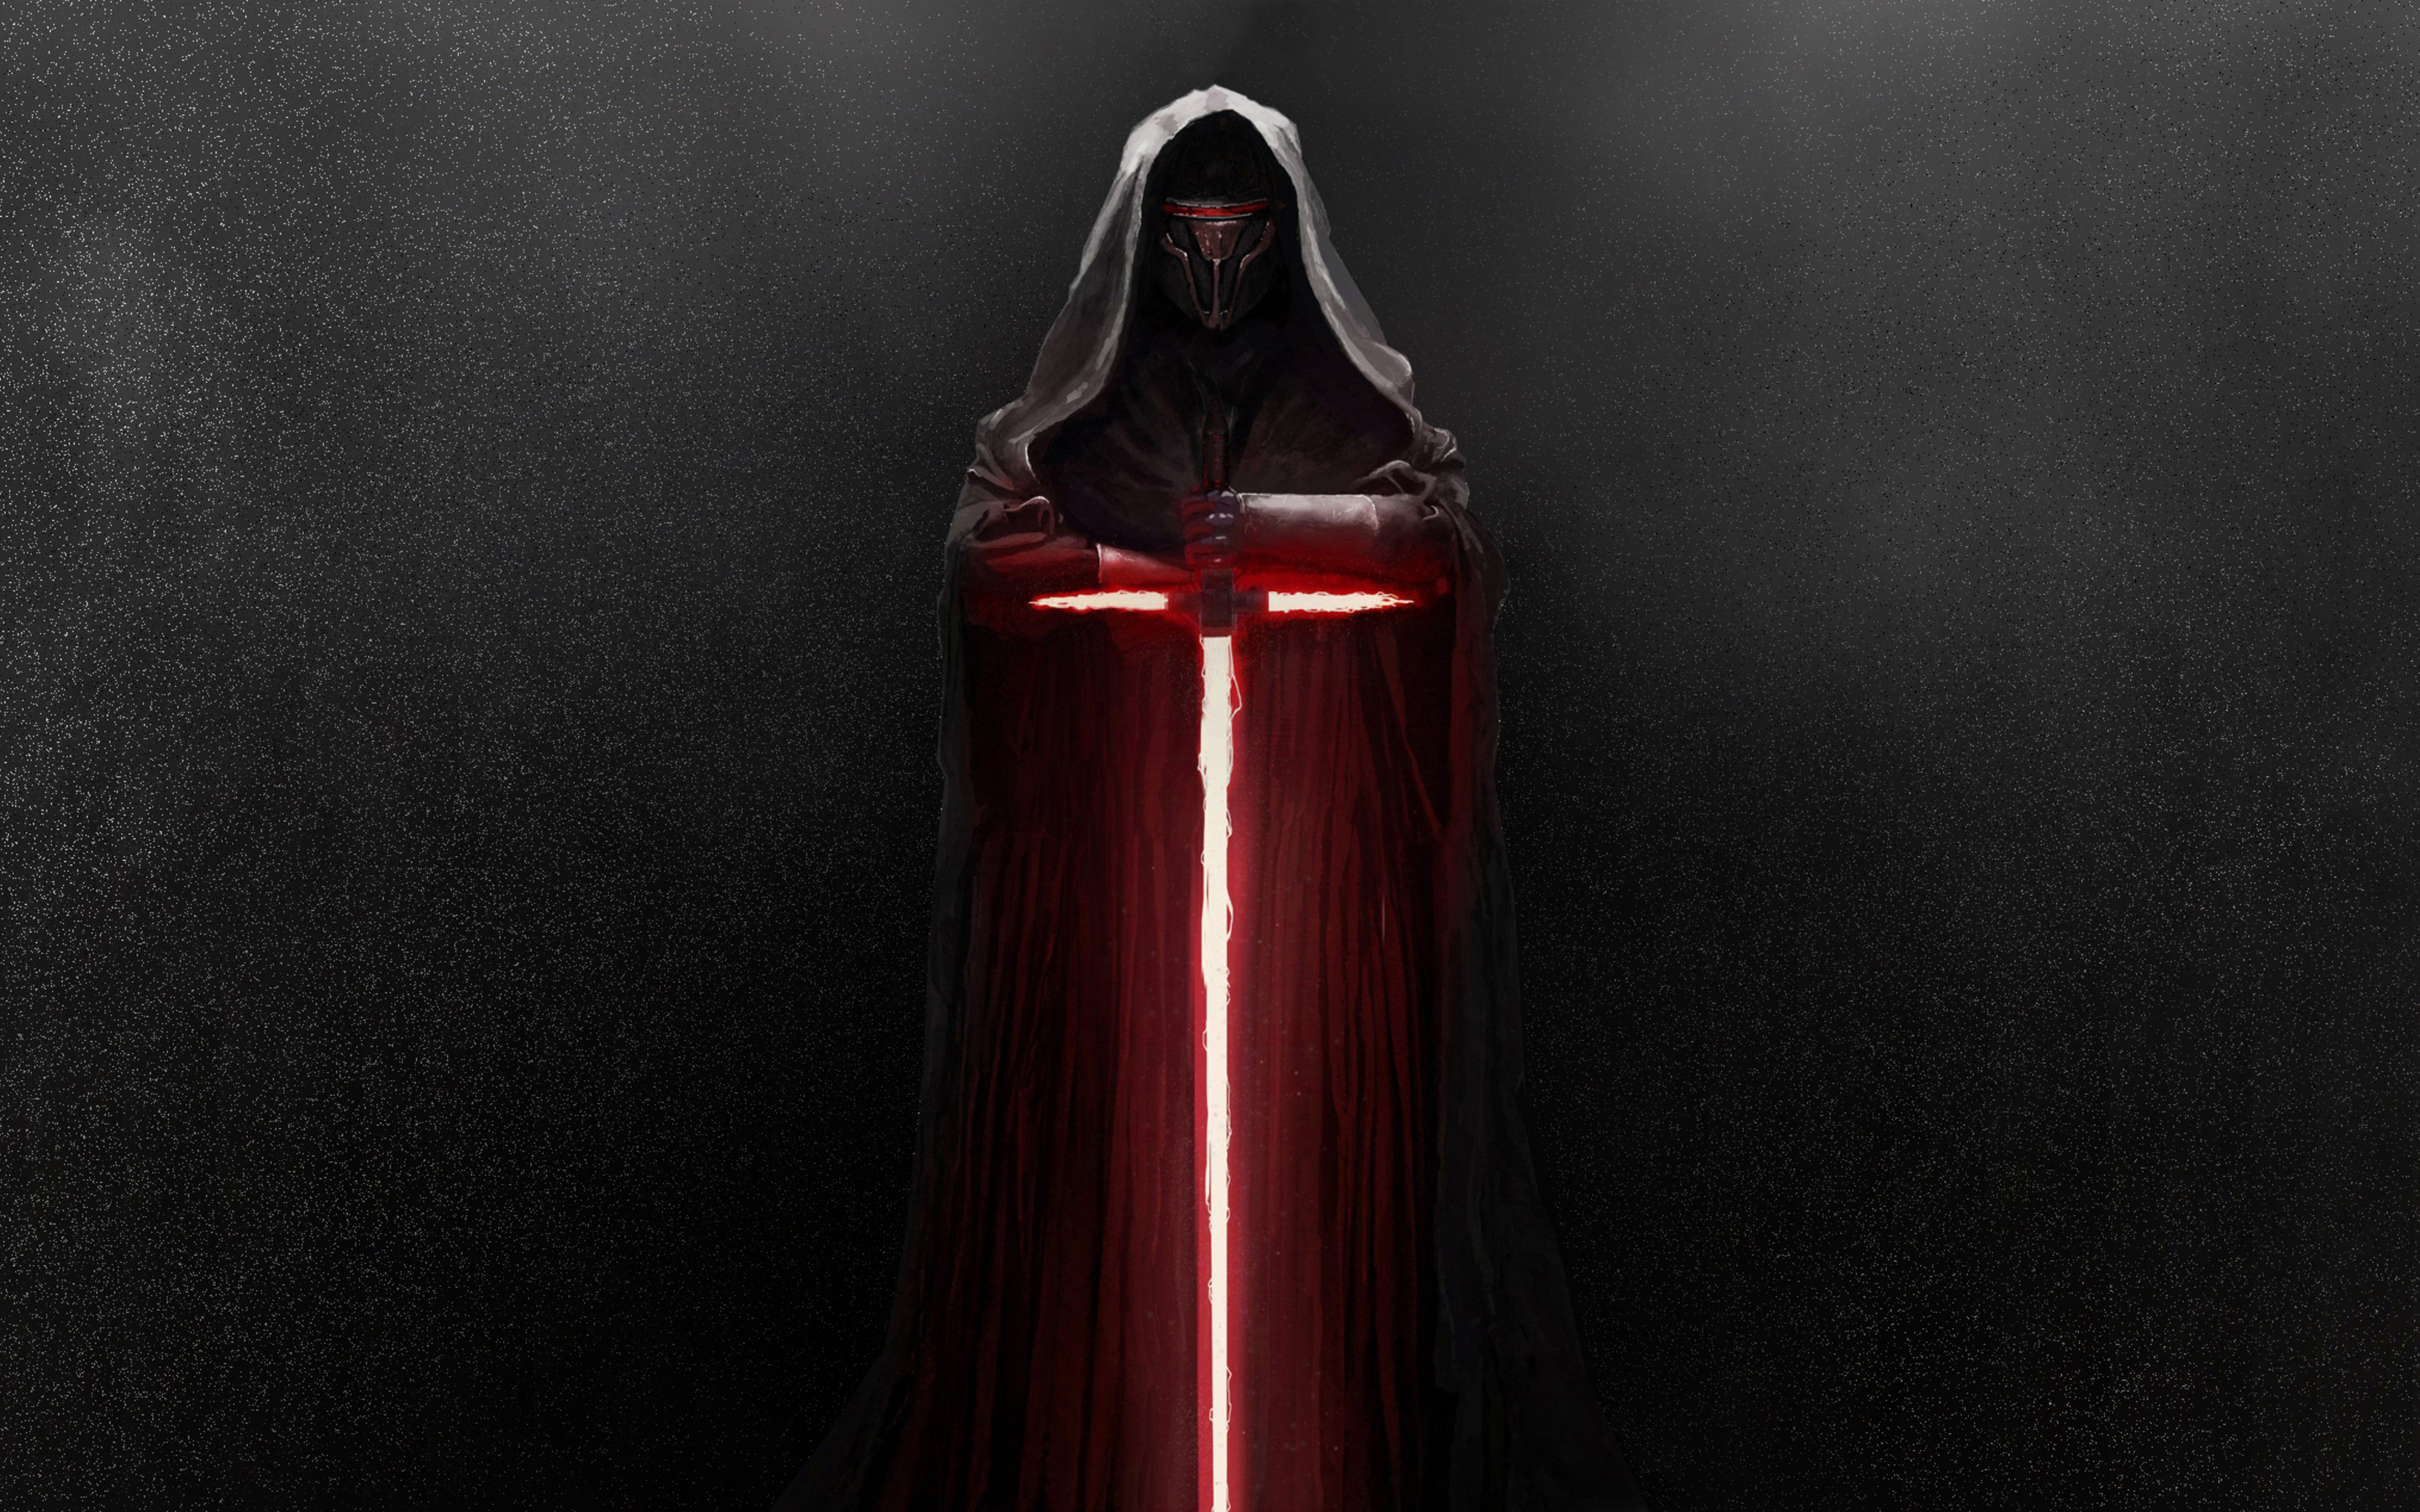 kylo-ren-lightsaber-star-wars-new.jpg